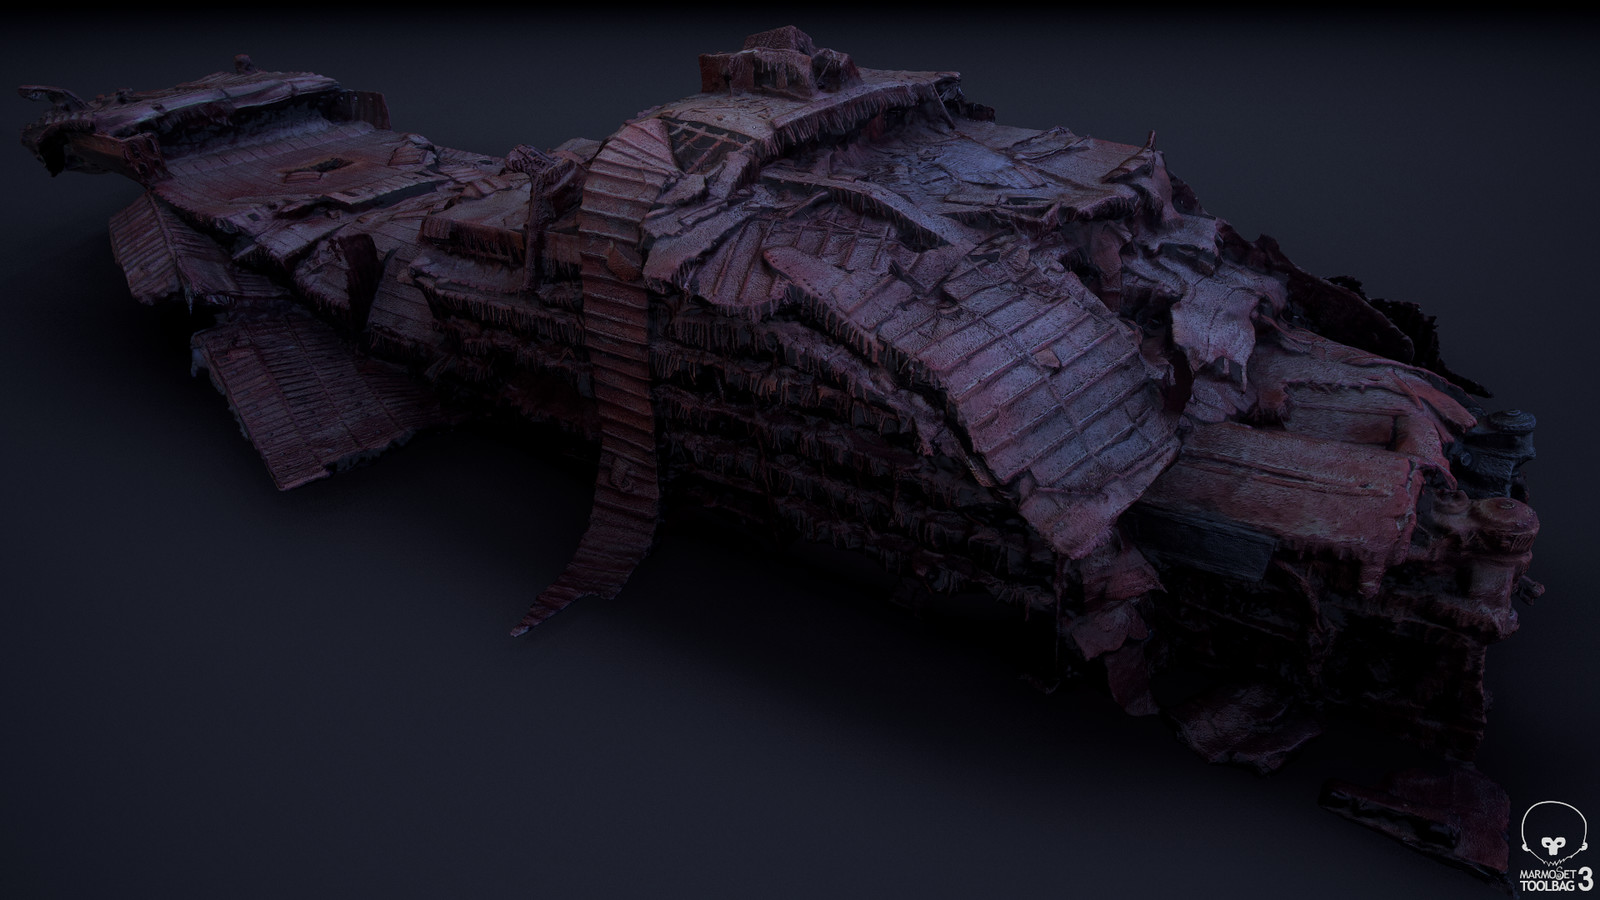 Agisoft Photoscan output geometry, viewed in Marmoset Toolbag 3 (03)